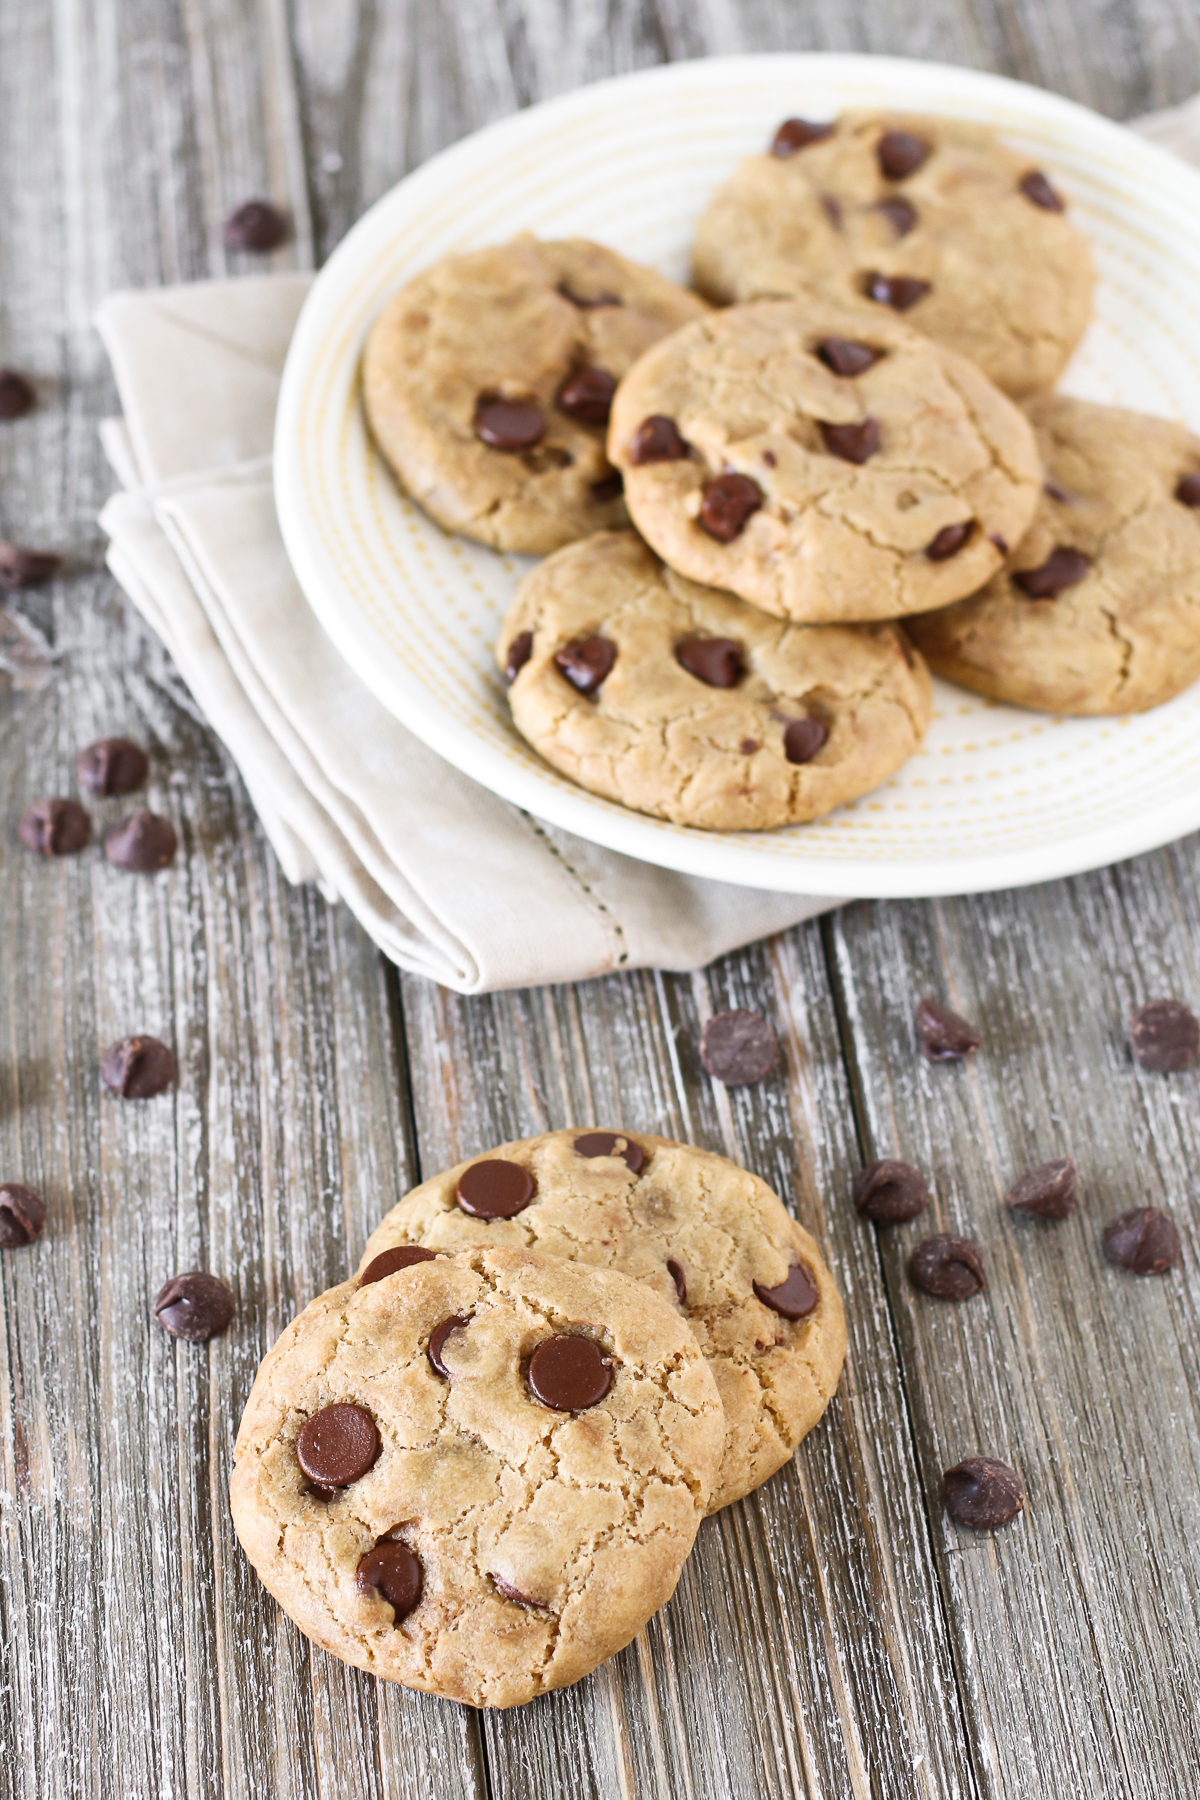 The Perfect Gluten Free Vegan Chocolate Chip Cookie. Crispy on the edges, gooey and chewy in the center and loaded with chocolate chips. That's what makes these the BEST chocolate chip cookies!